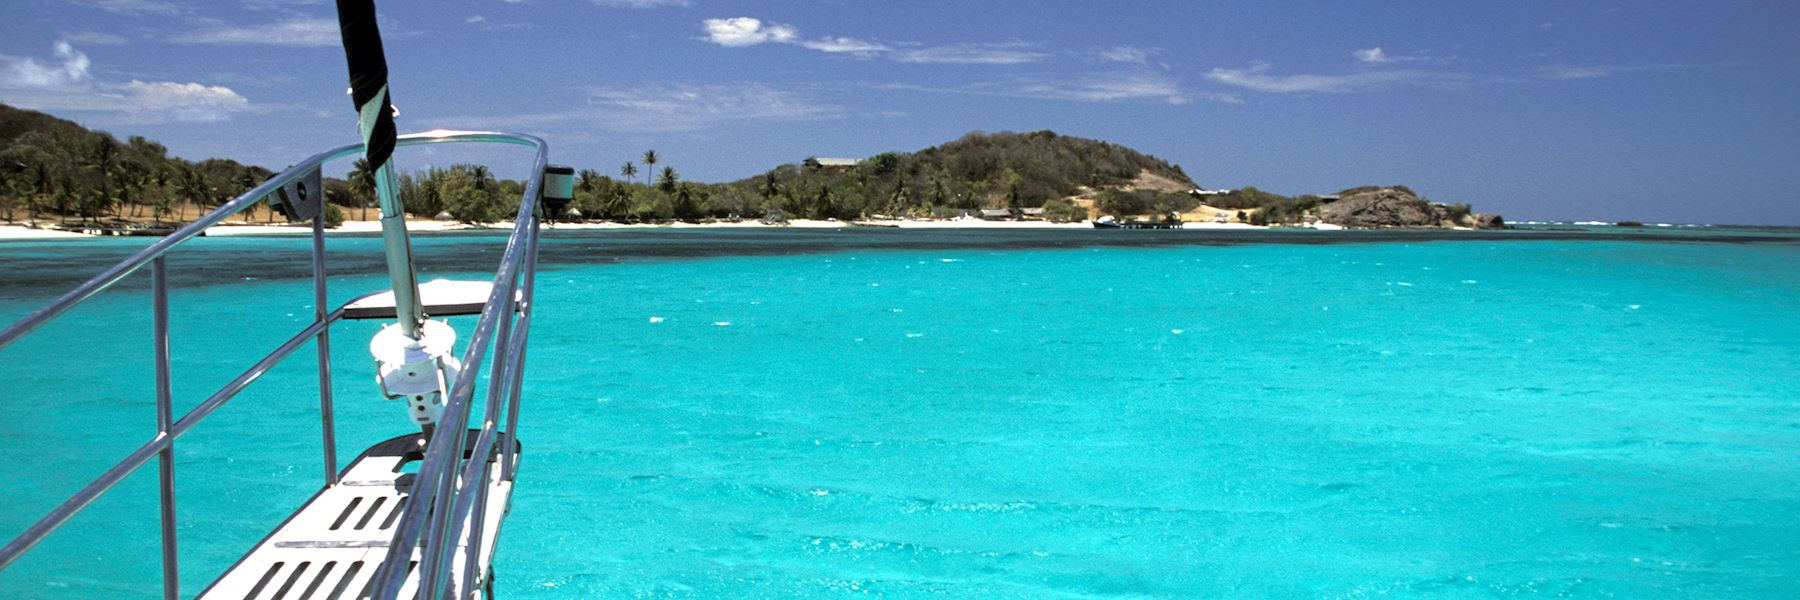 Places to visit in St Vincent and the Grenadines